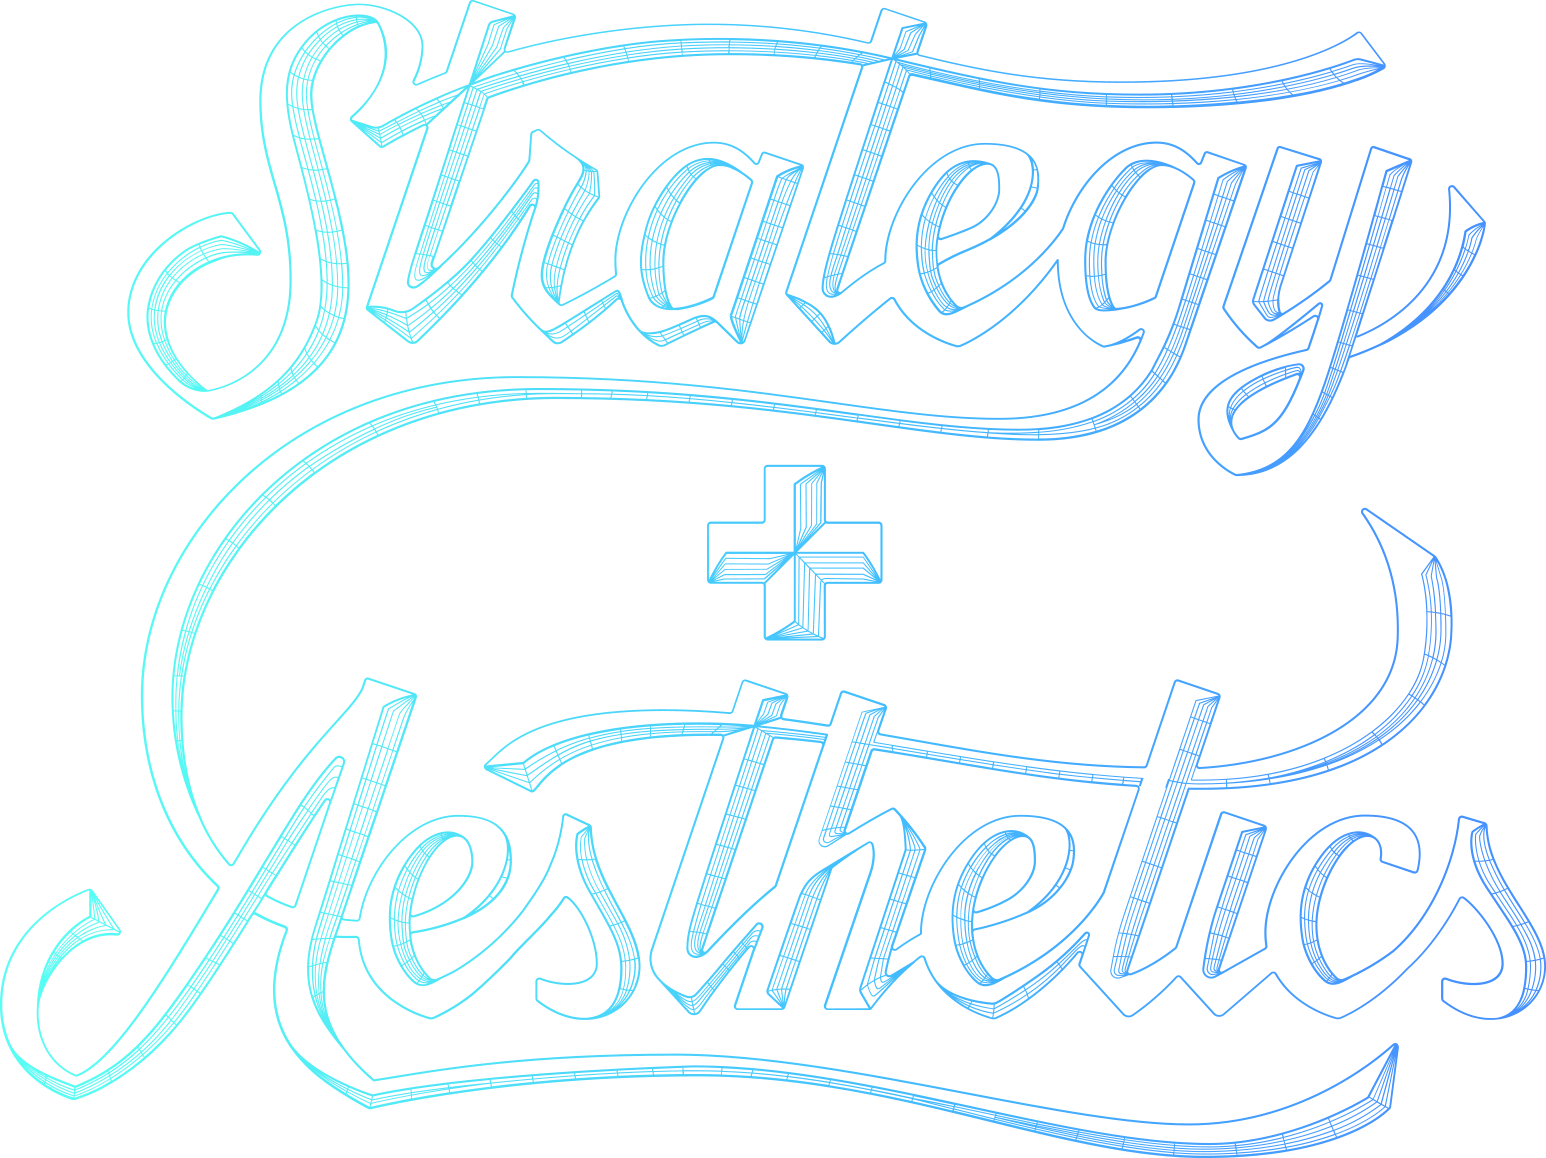 Strategy and aesthetics